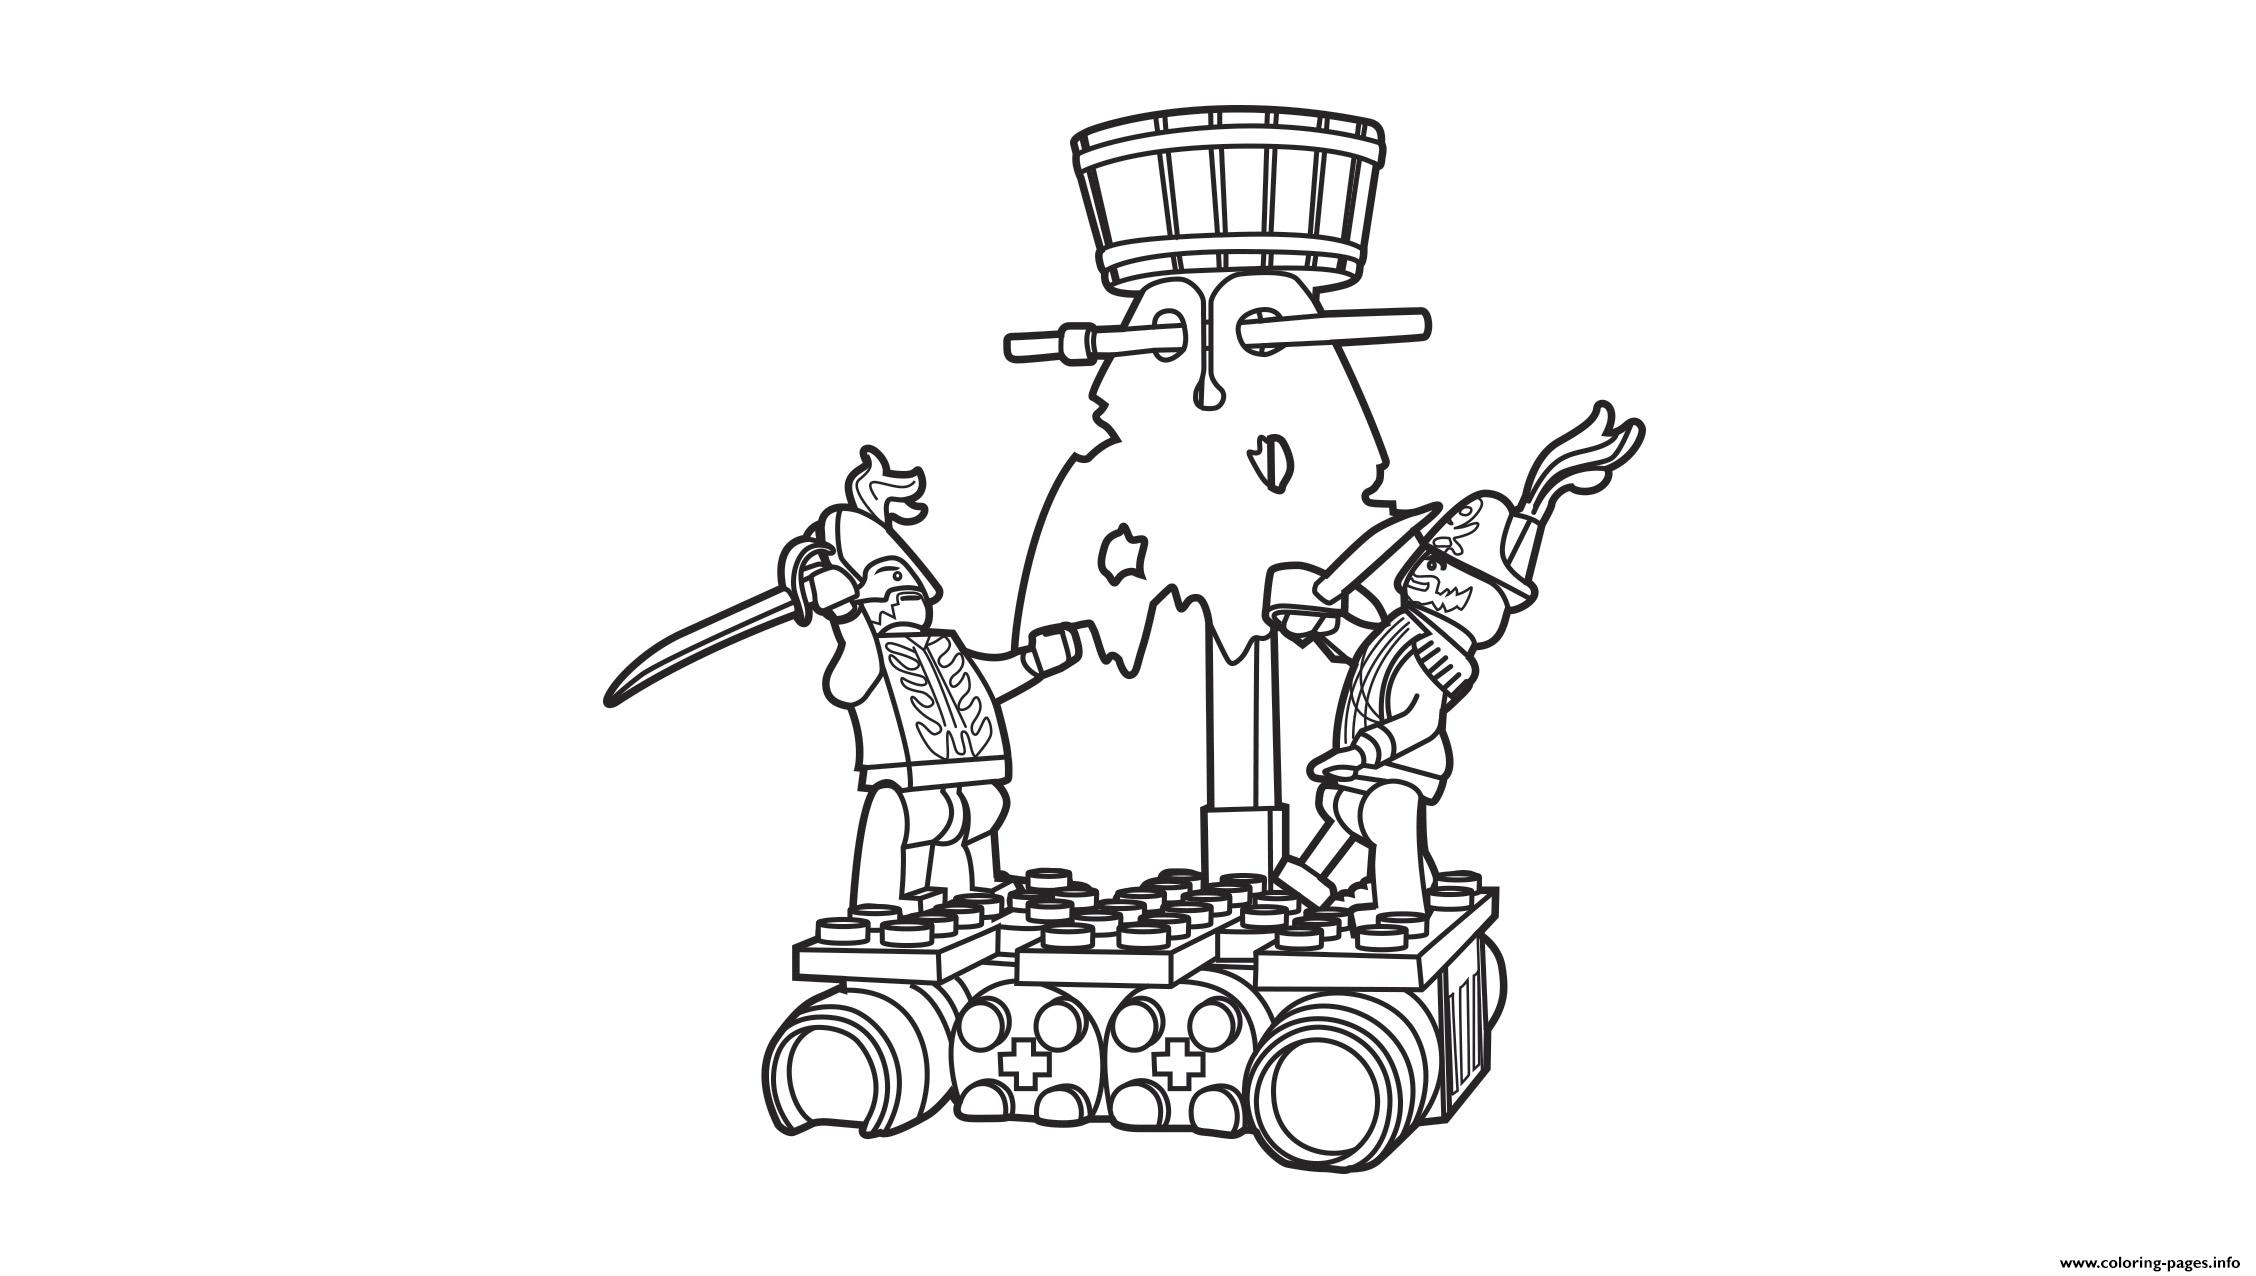 Lego Pirates Destroy Boat Coloring Pages Printable